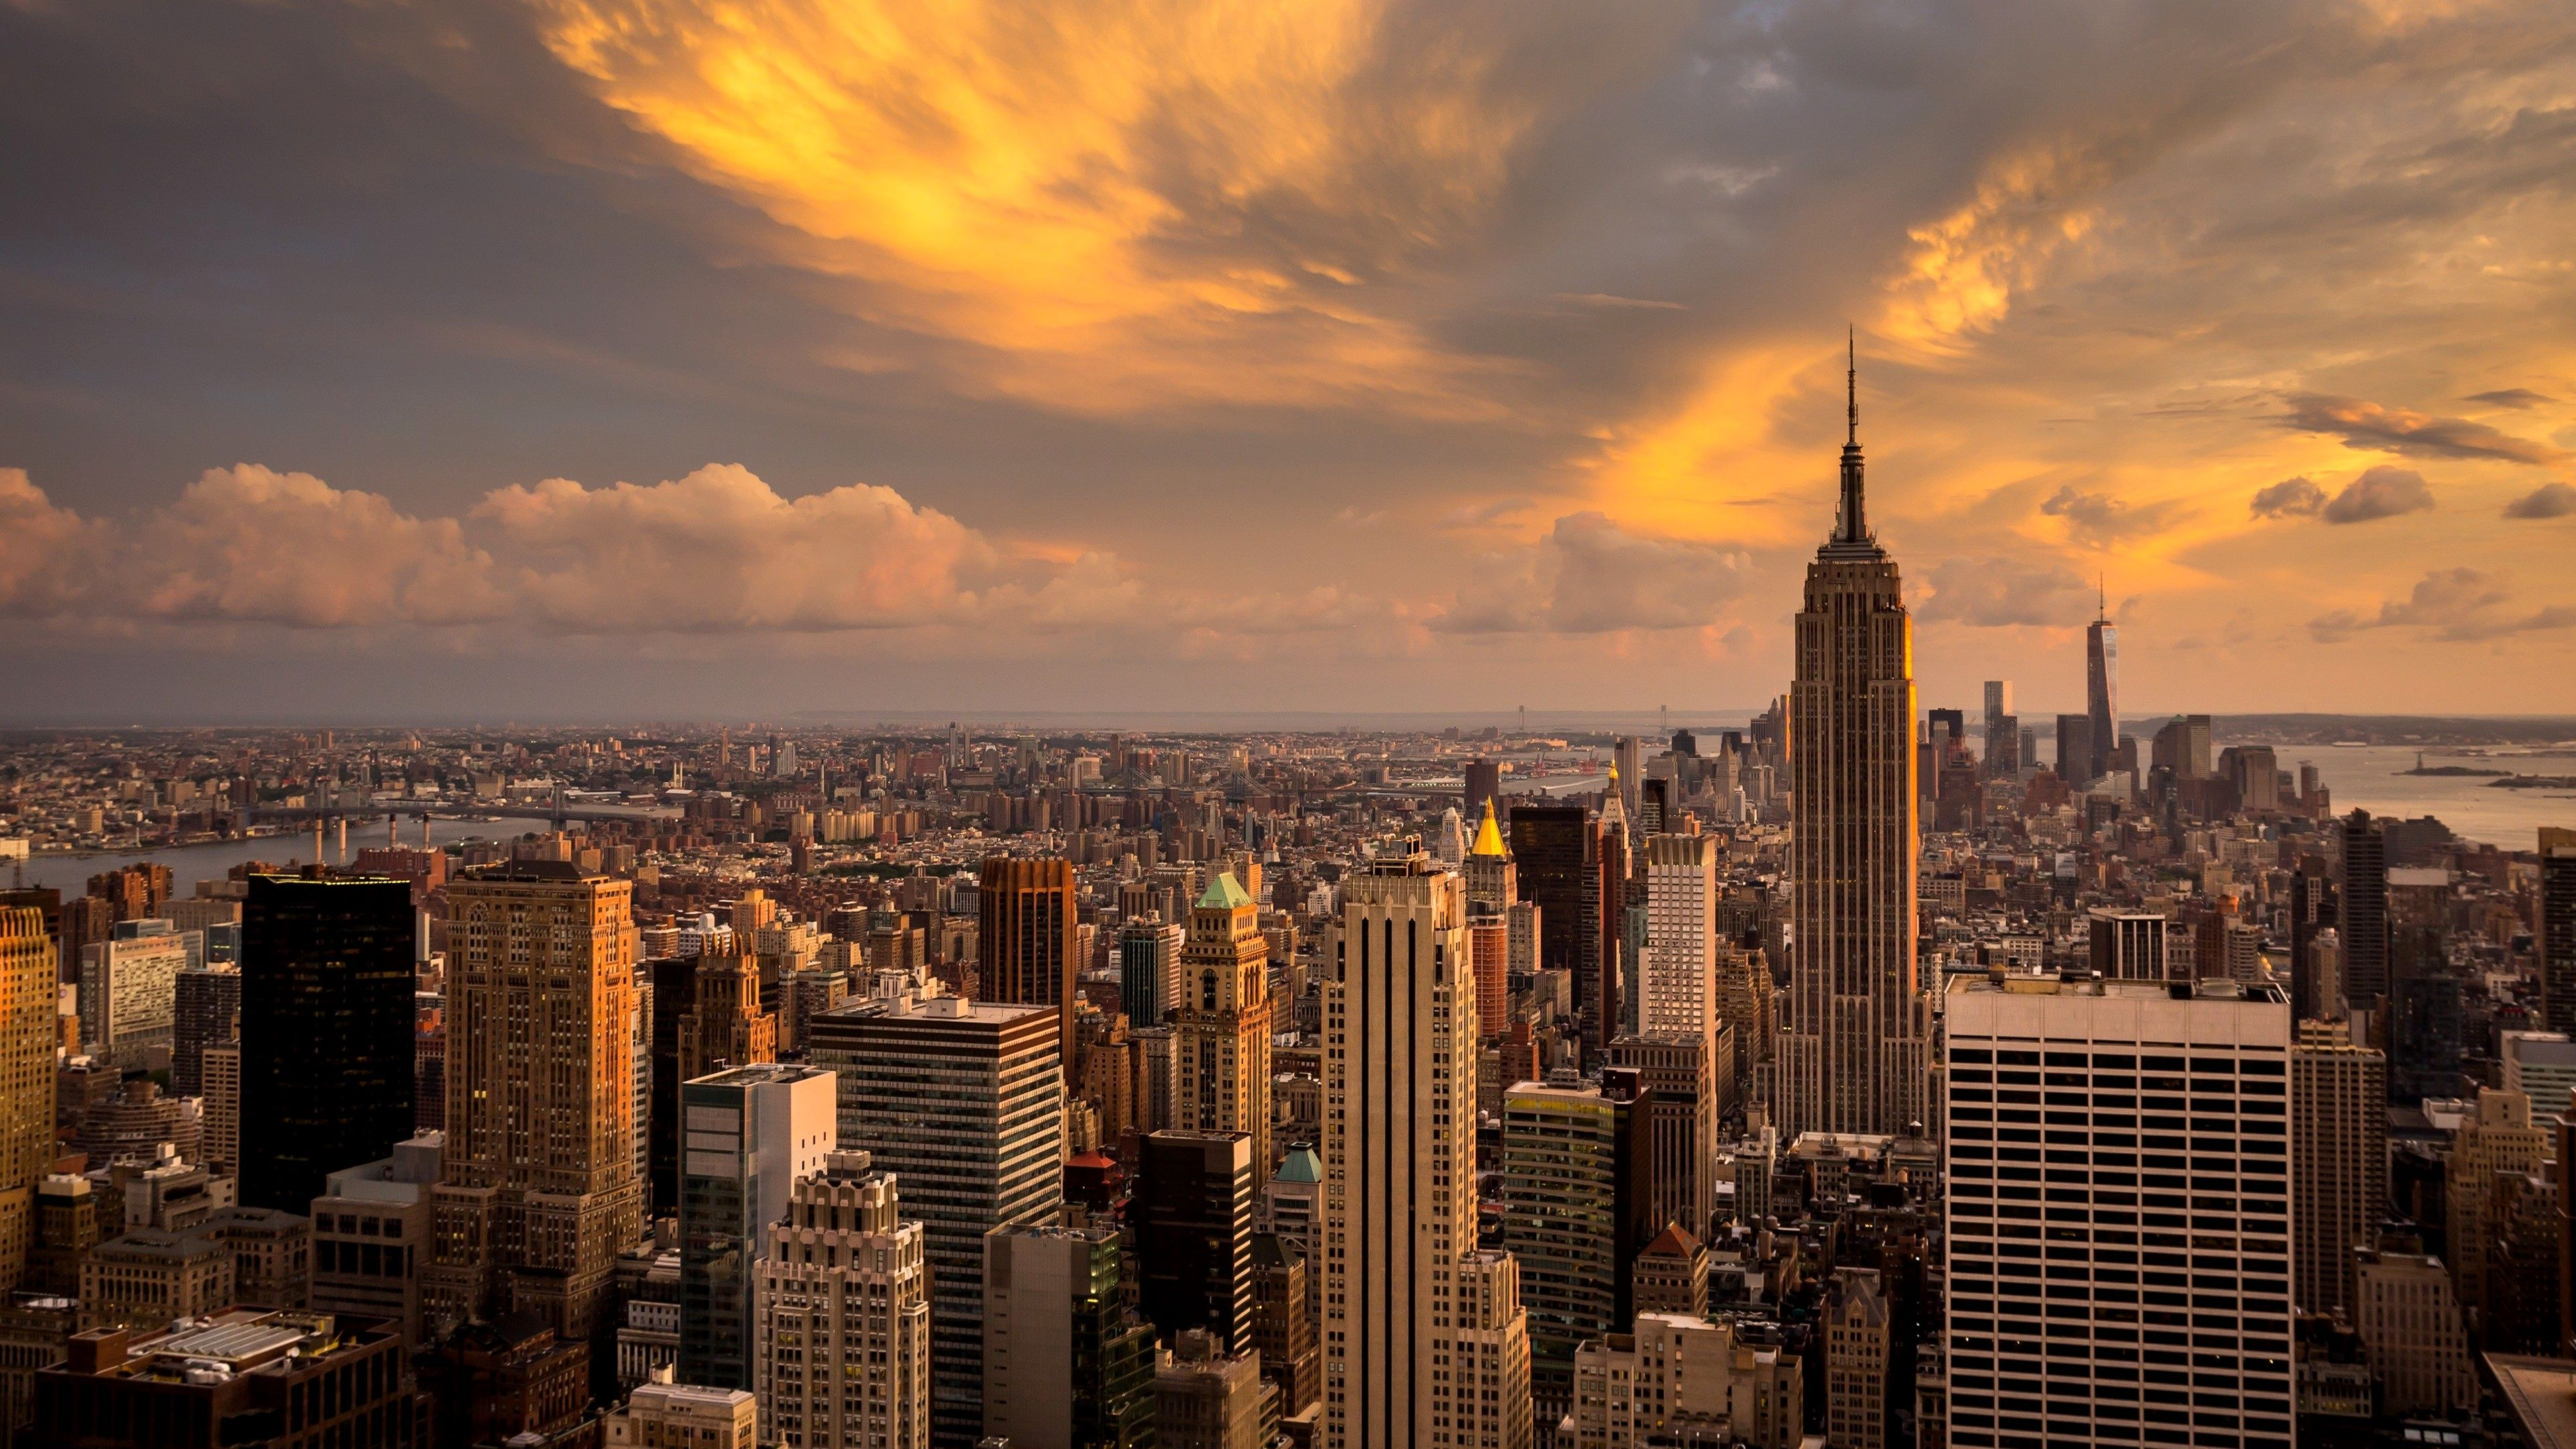 New York Wallpaper 4k Phone Gallery 4k In 2020 With Images New